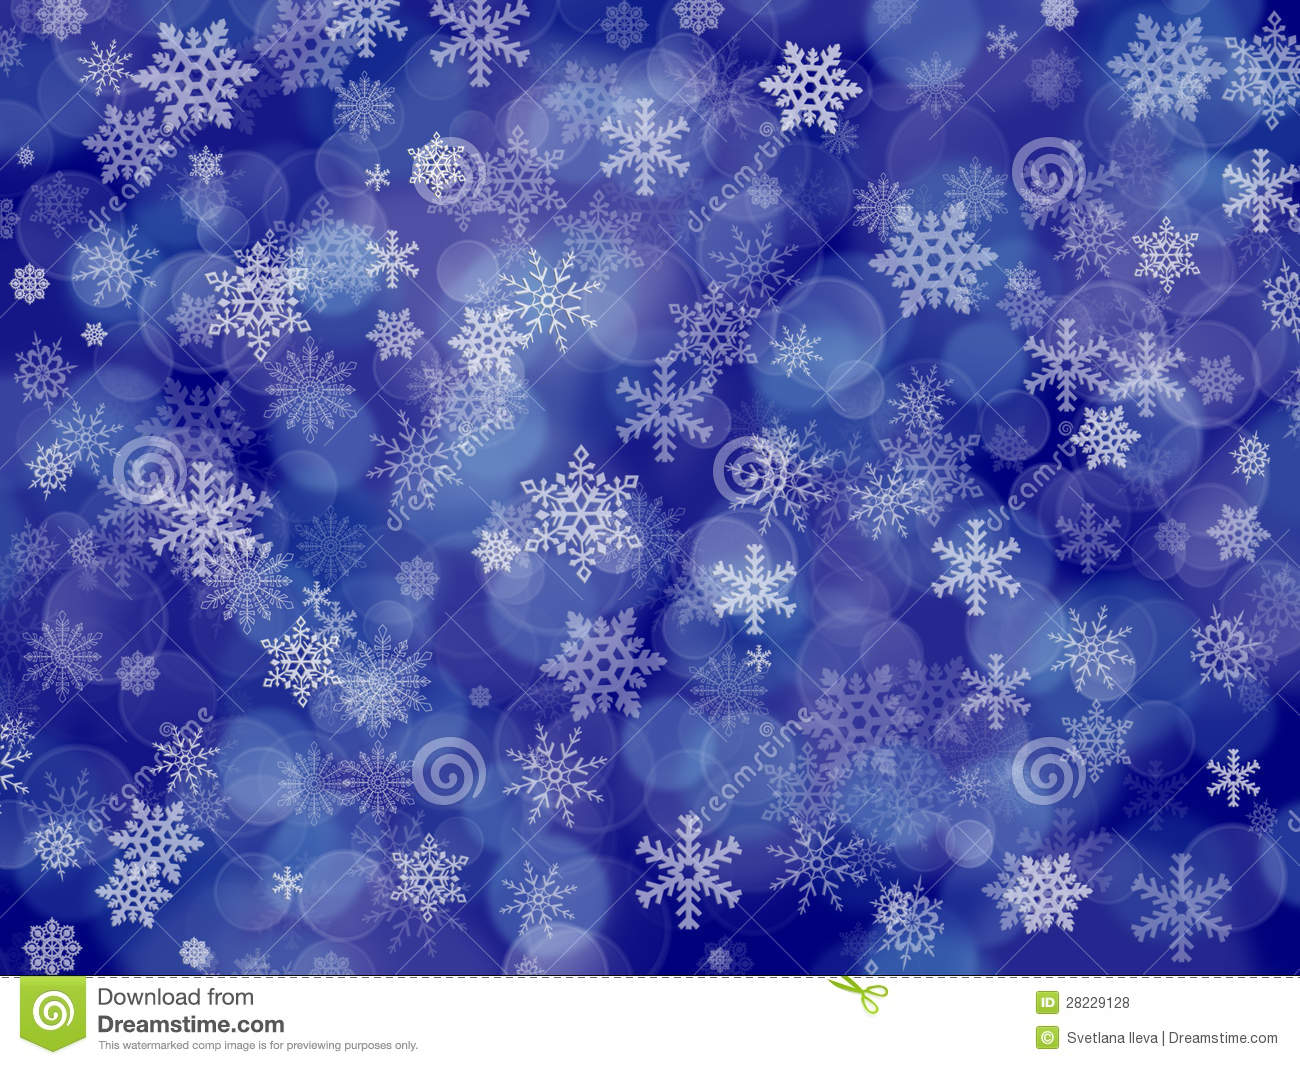 dark blue winter background with snowflakes and boke stock illustration